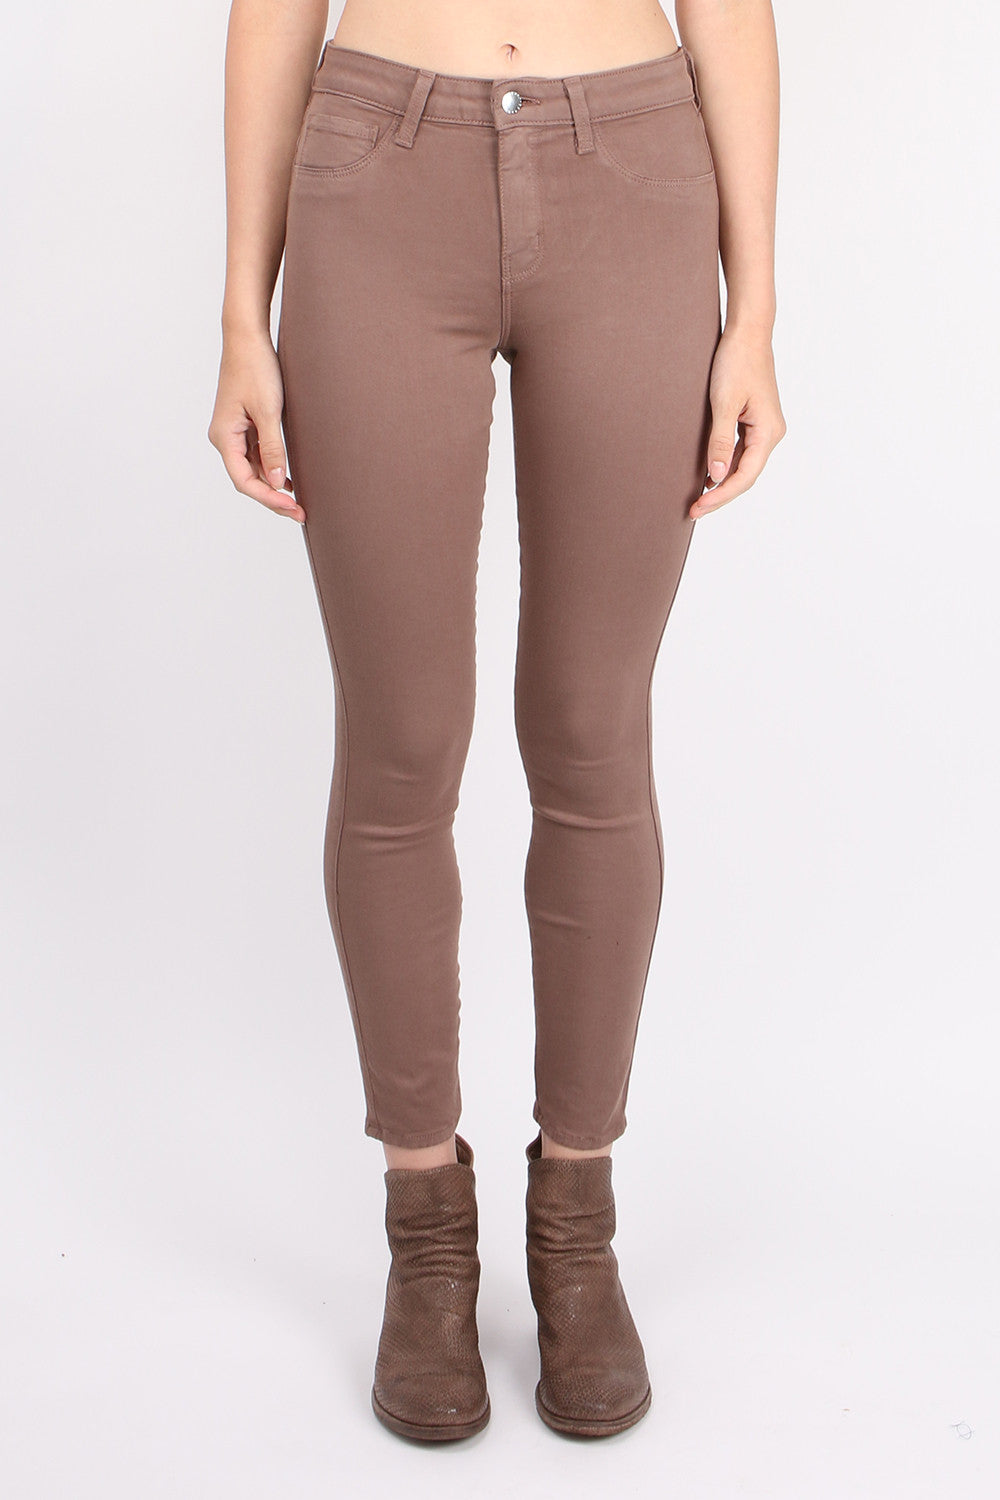 L'Agence Margot High Rise Skinny Pine Bark